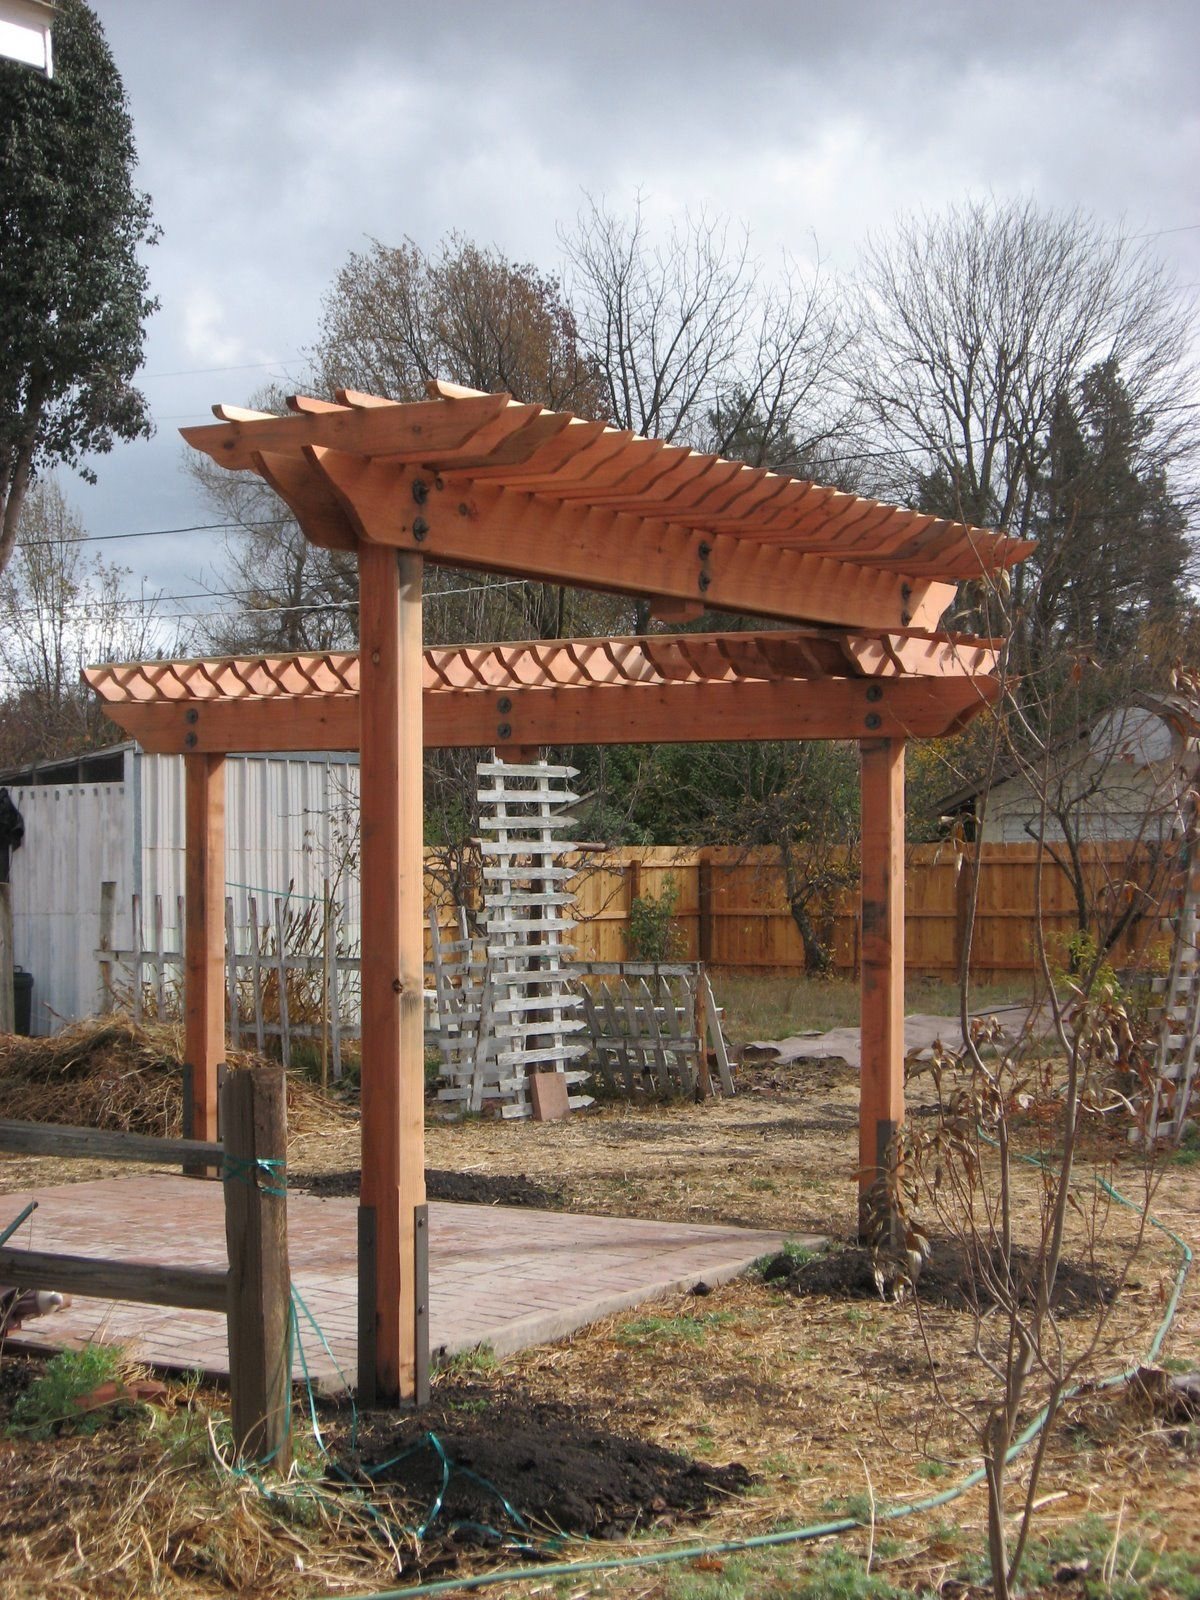 Pin by Elba Tomelden on Diy projects Outdoor structures